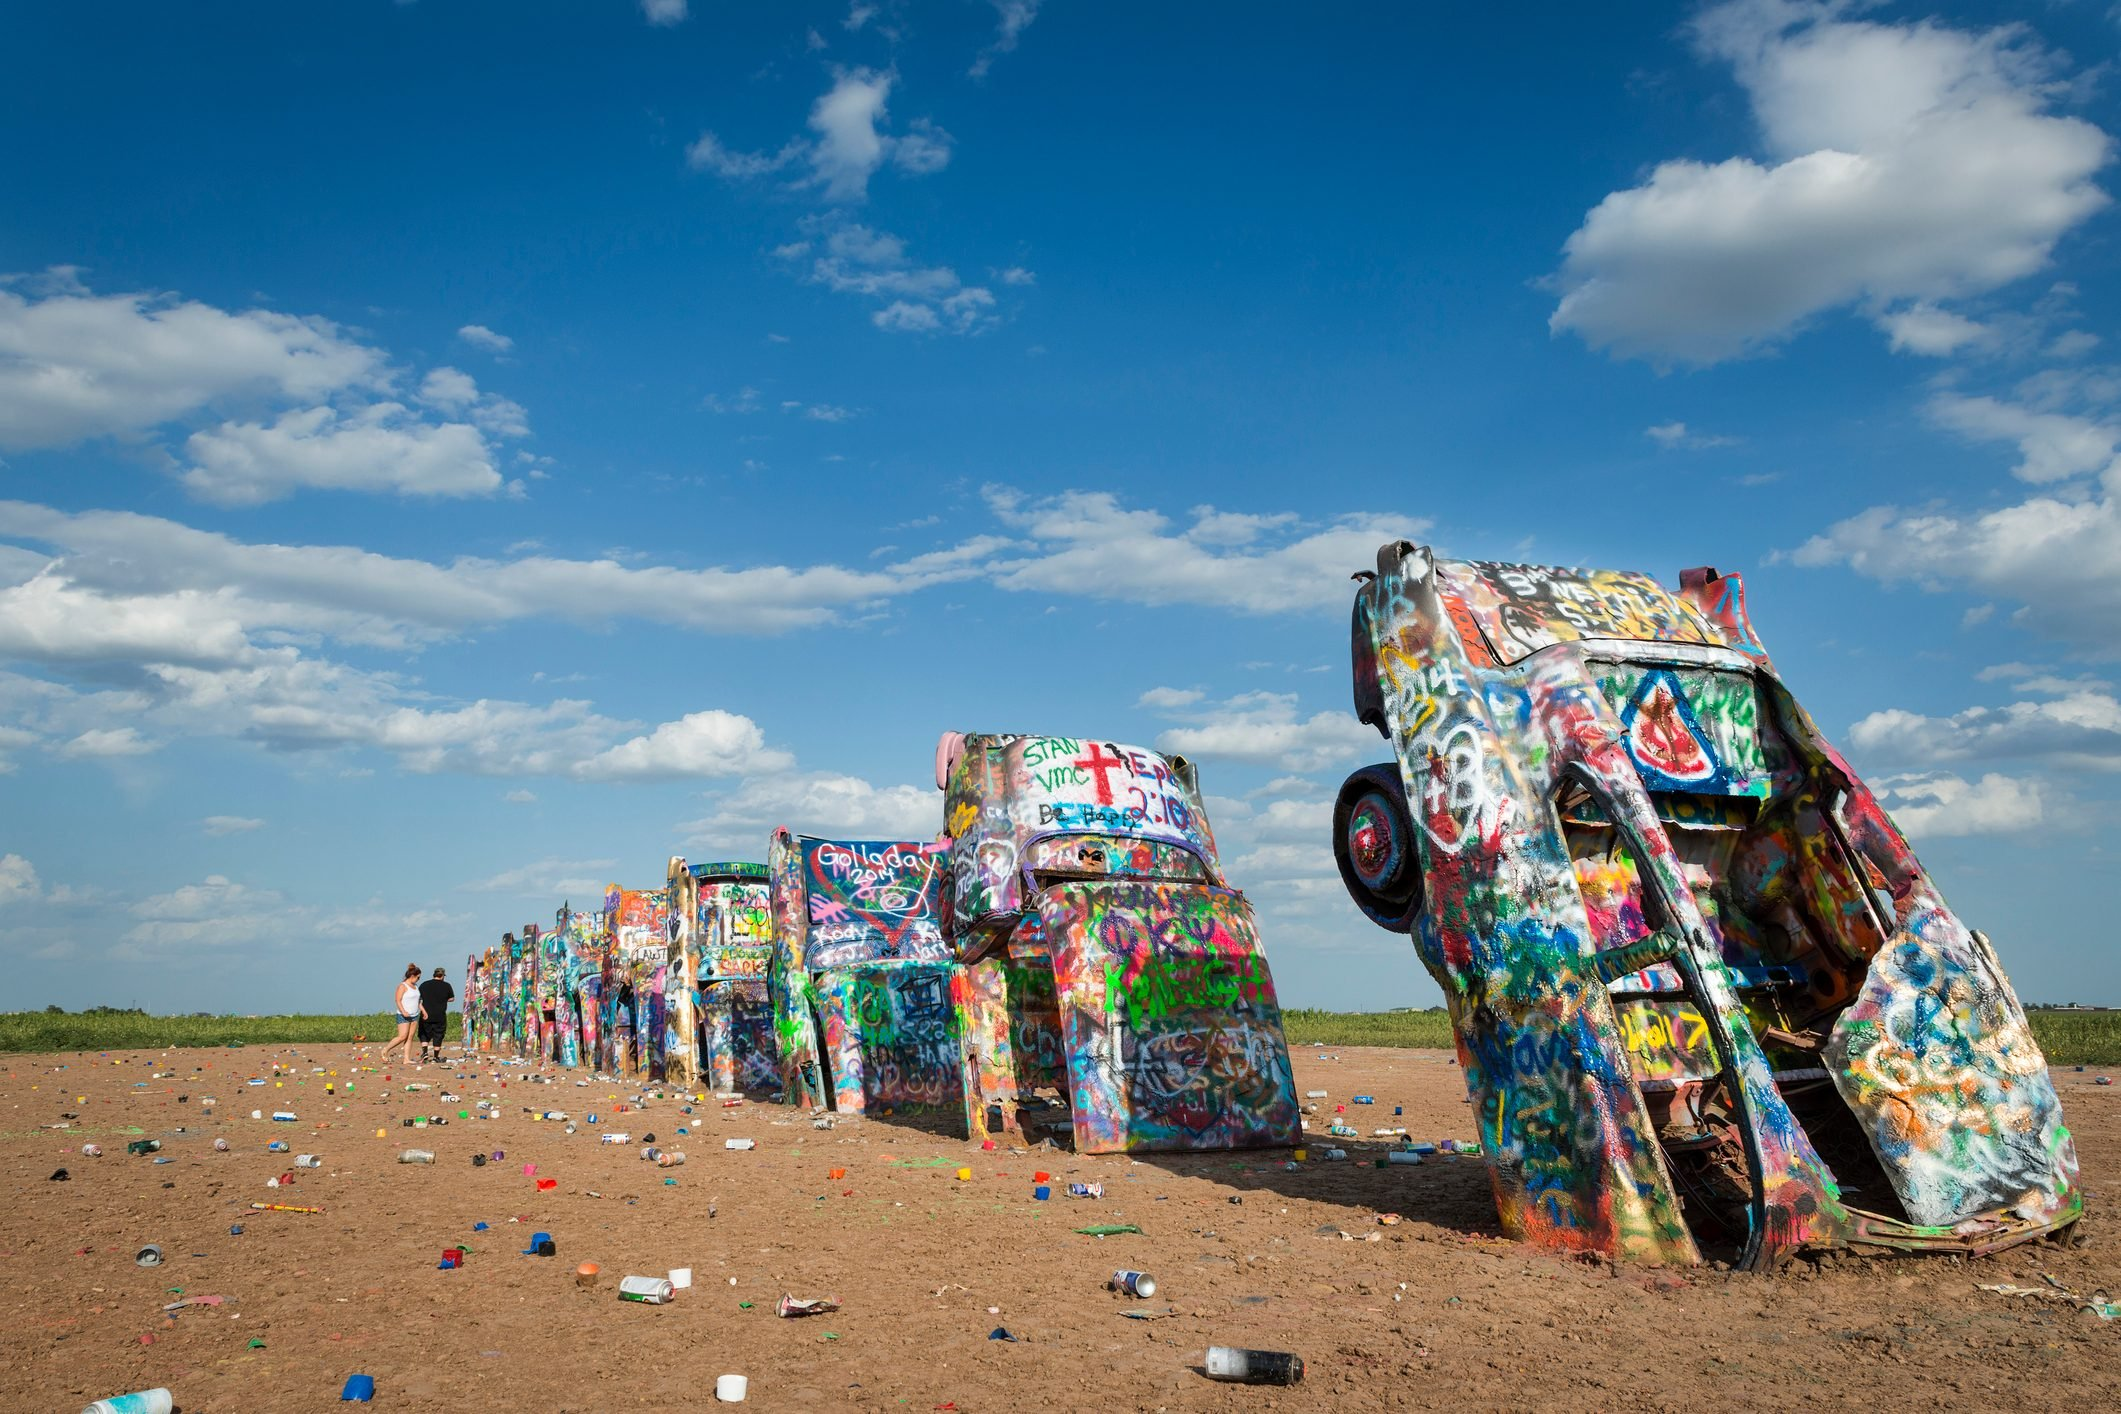 Row of brightly painted Cadillacs in the Cadillac Ranch in Amarillo, Texas, USA.